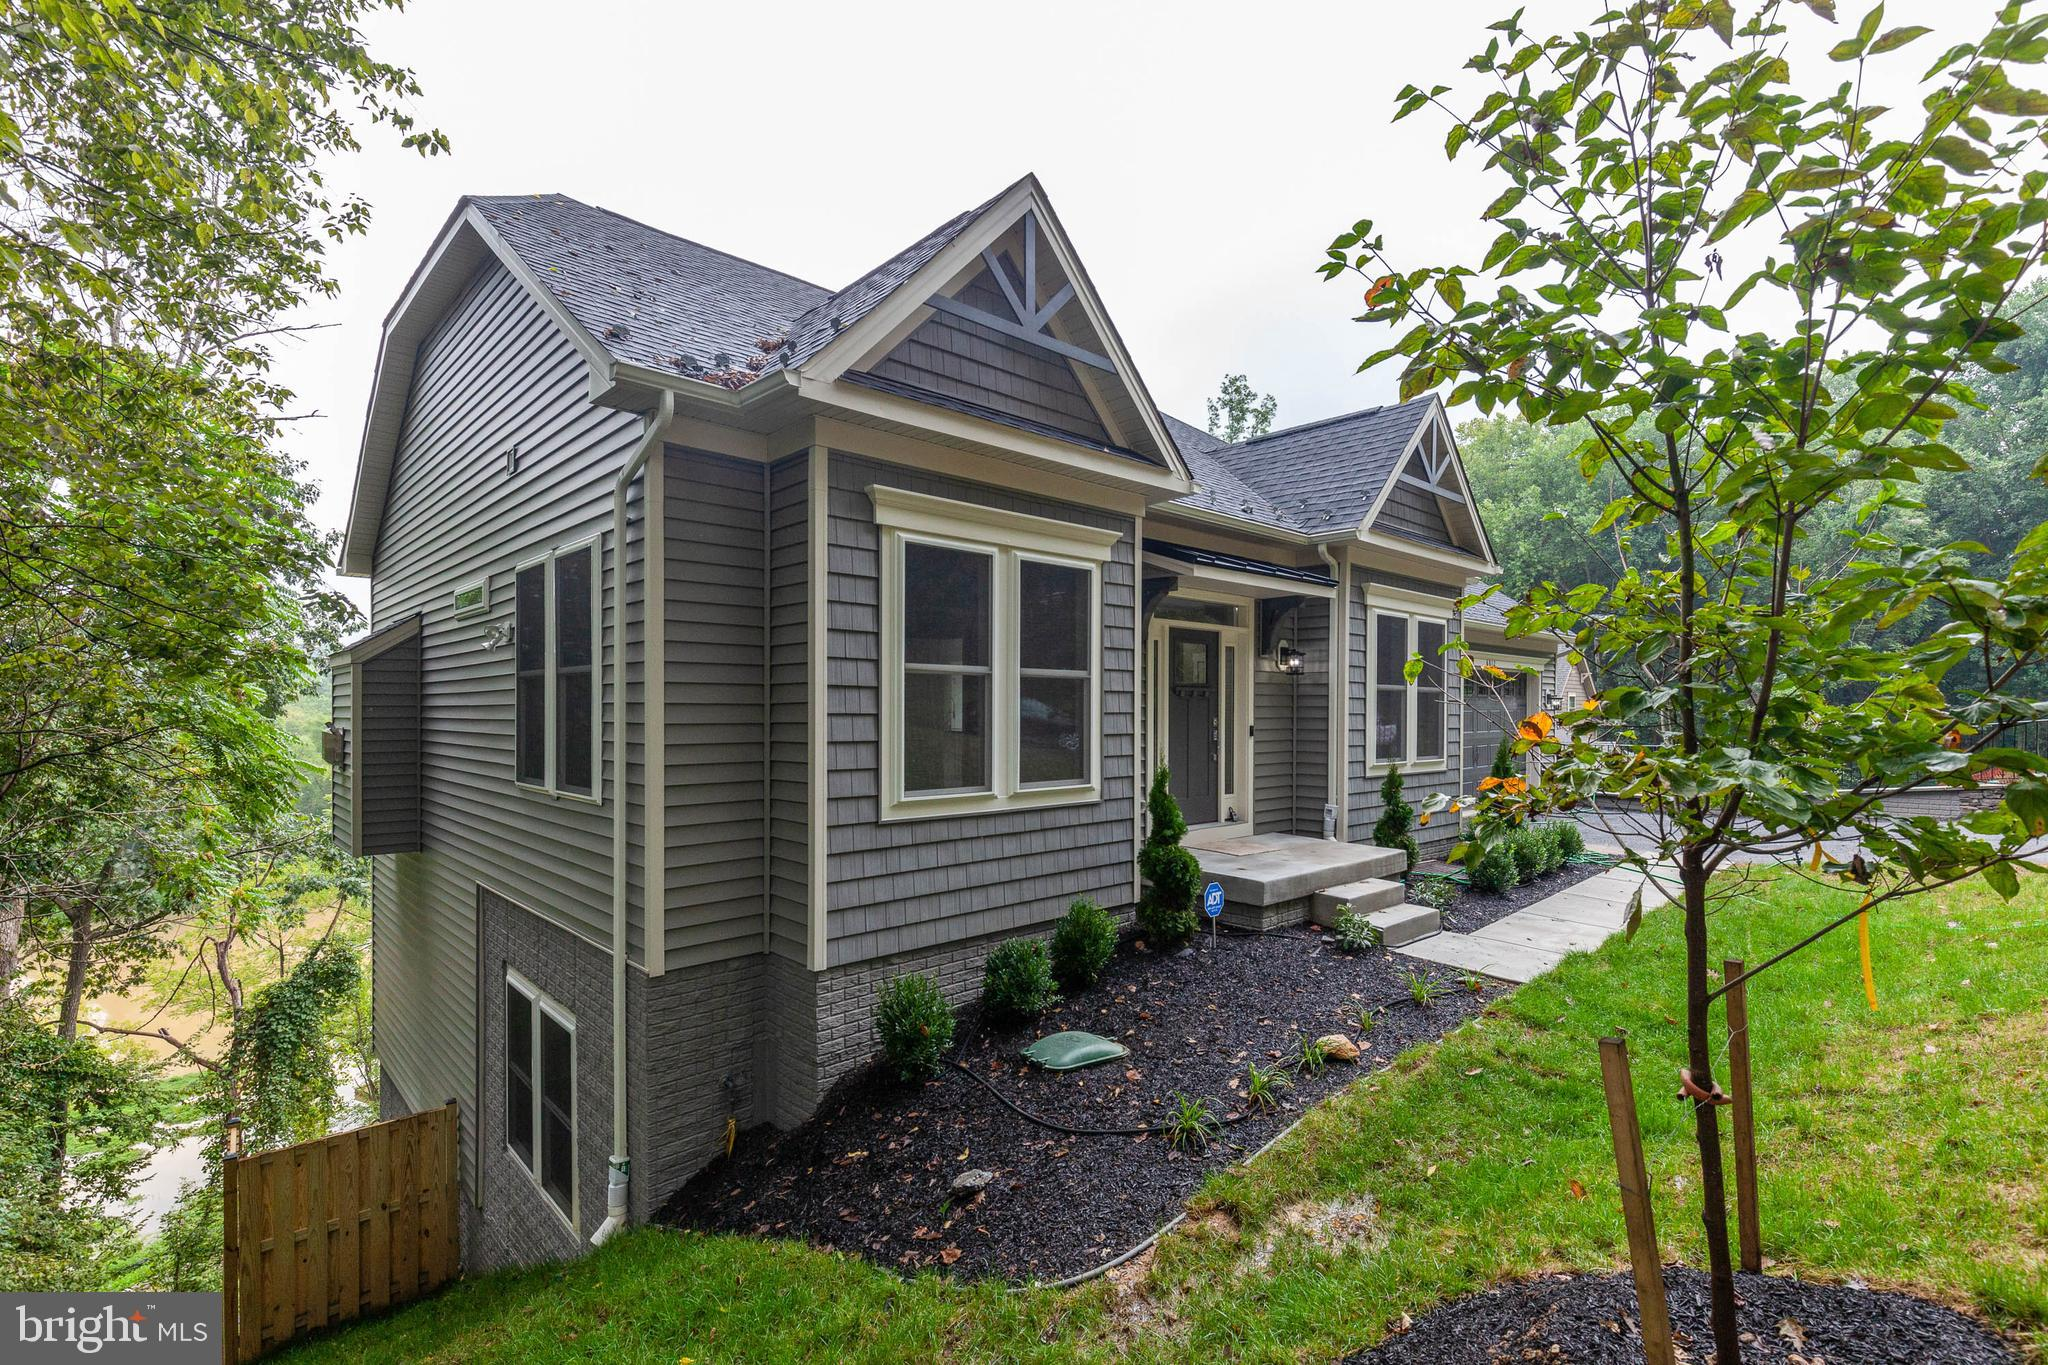 The Spree II is a classic! This home is the revival of Colonial times. With a strong presence, this